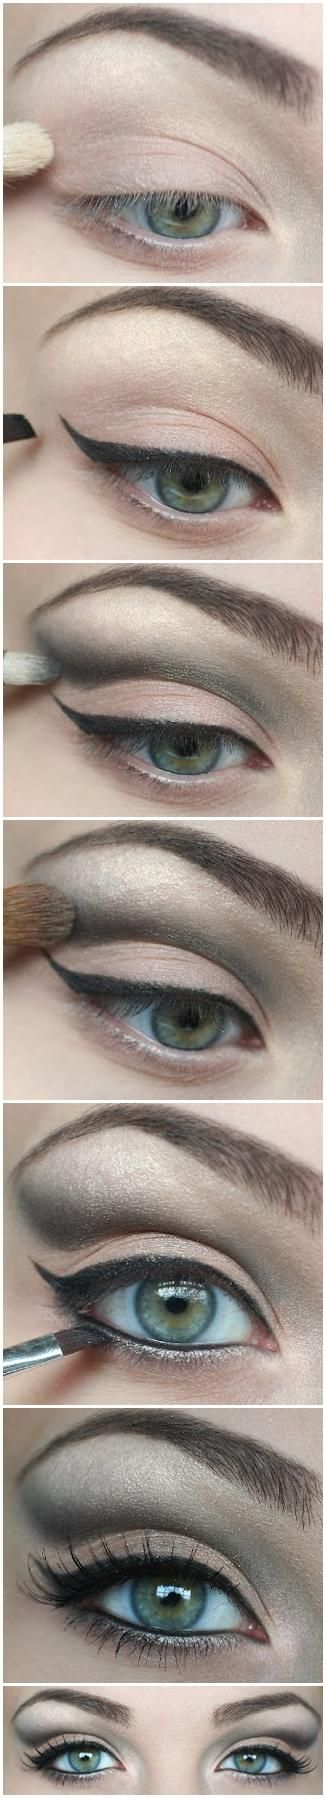 Winged Eyeliner Tutorial eye shadow how to diy makeup eye makeup eye